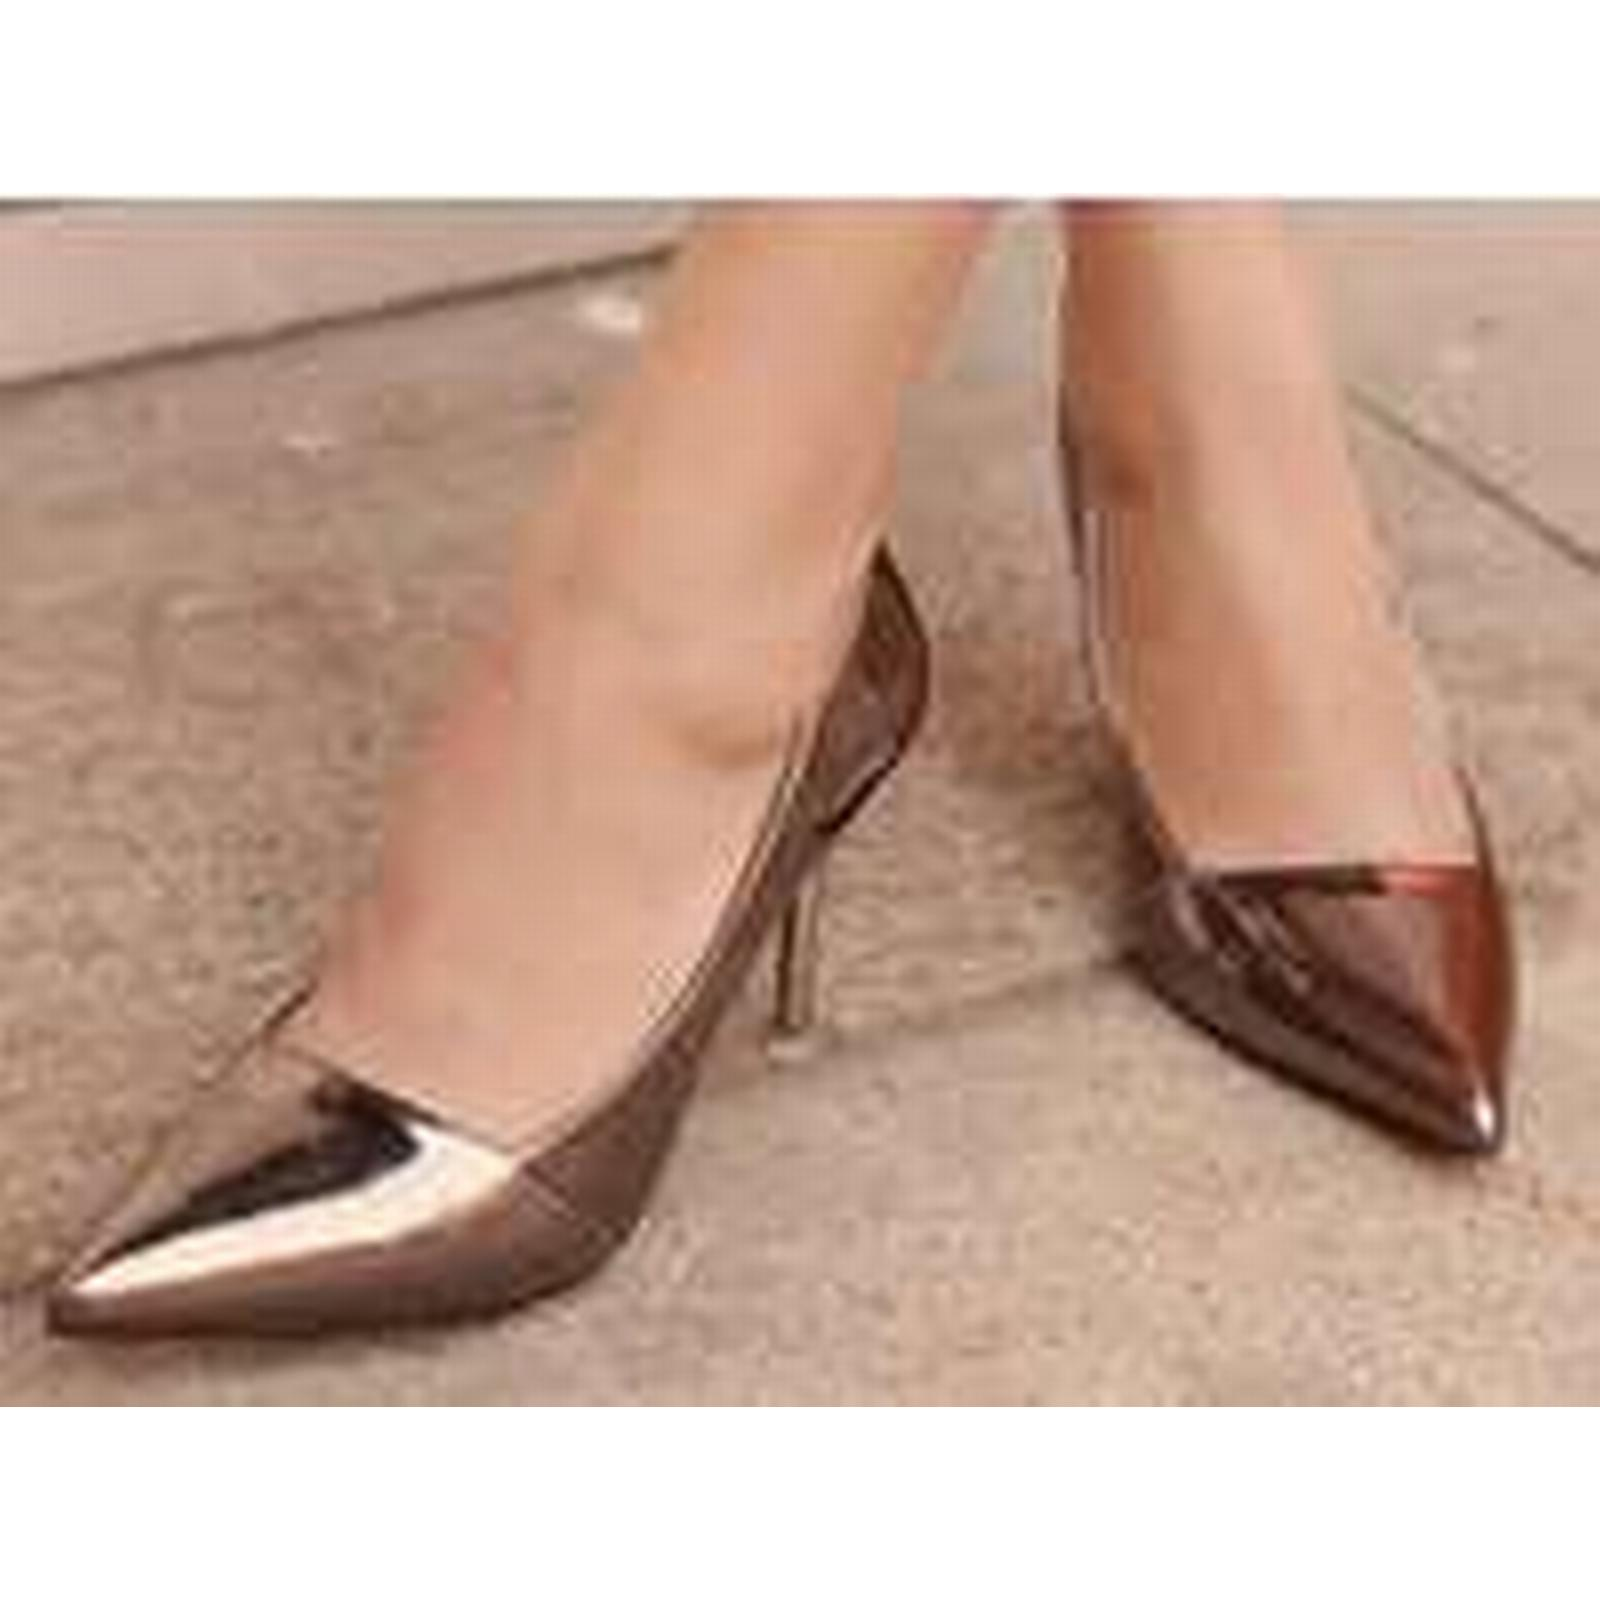 Bonanza (Global) pump, pp315 Highly colored pointy pump, (Global) US Size 4-8.5 gold ab1968